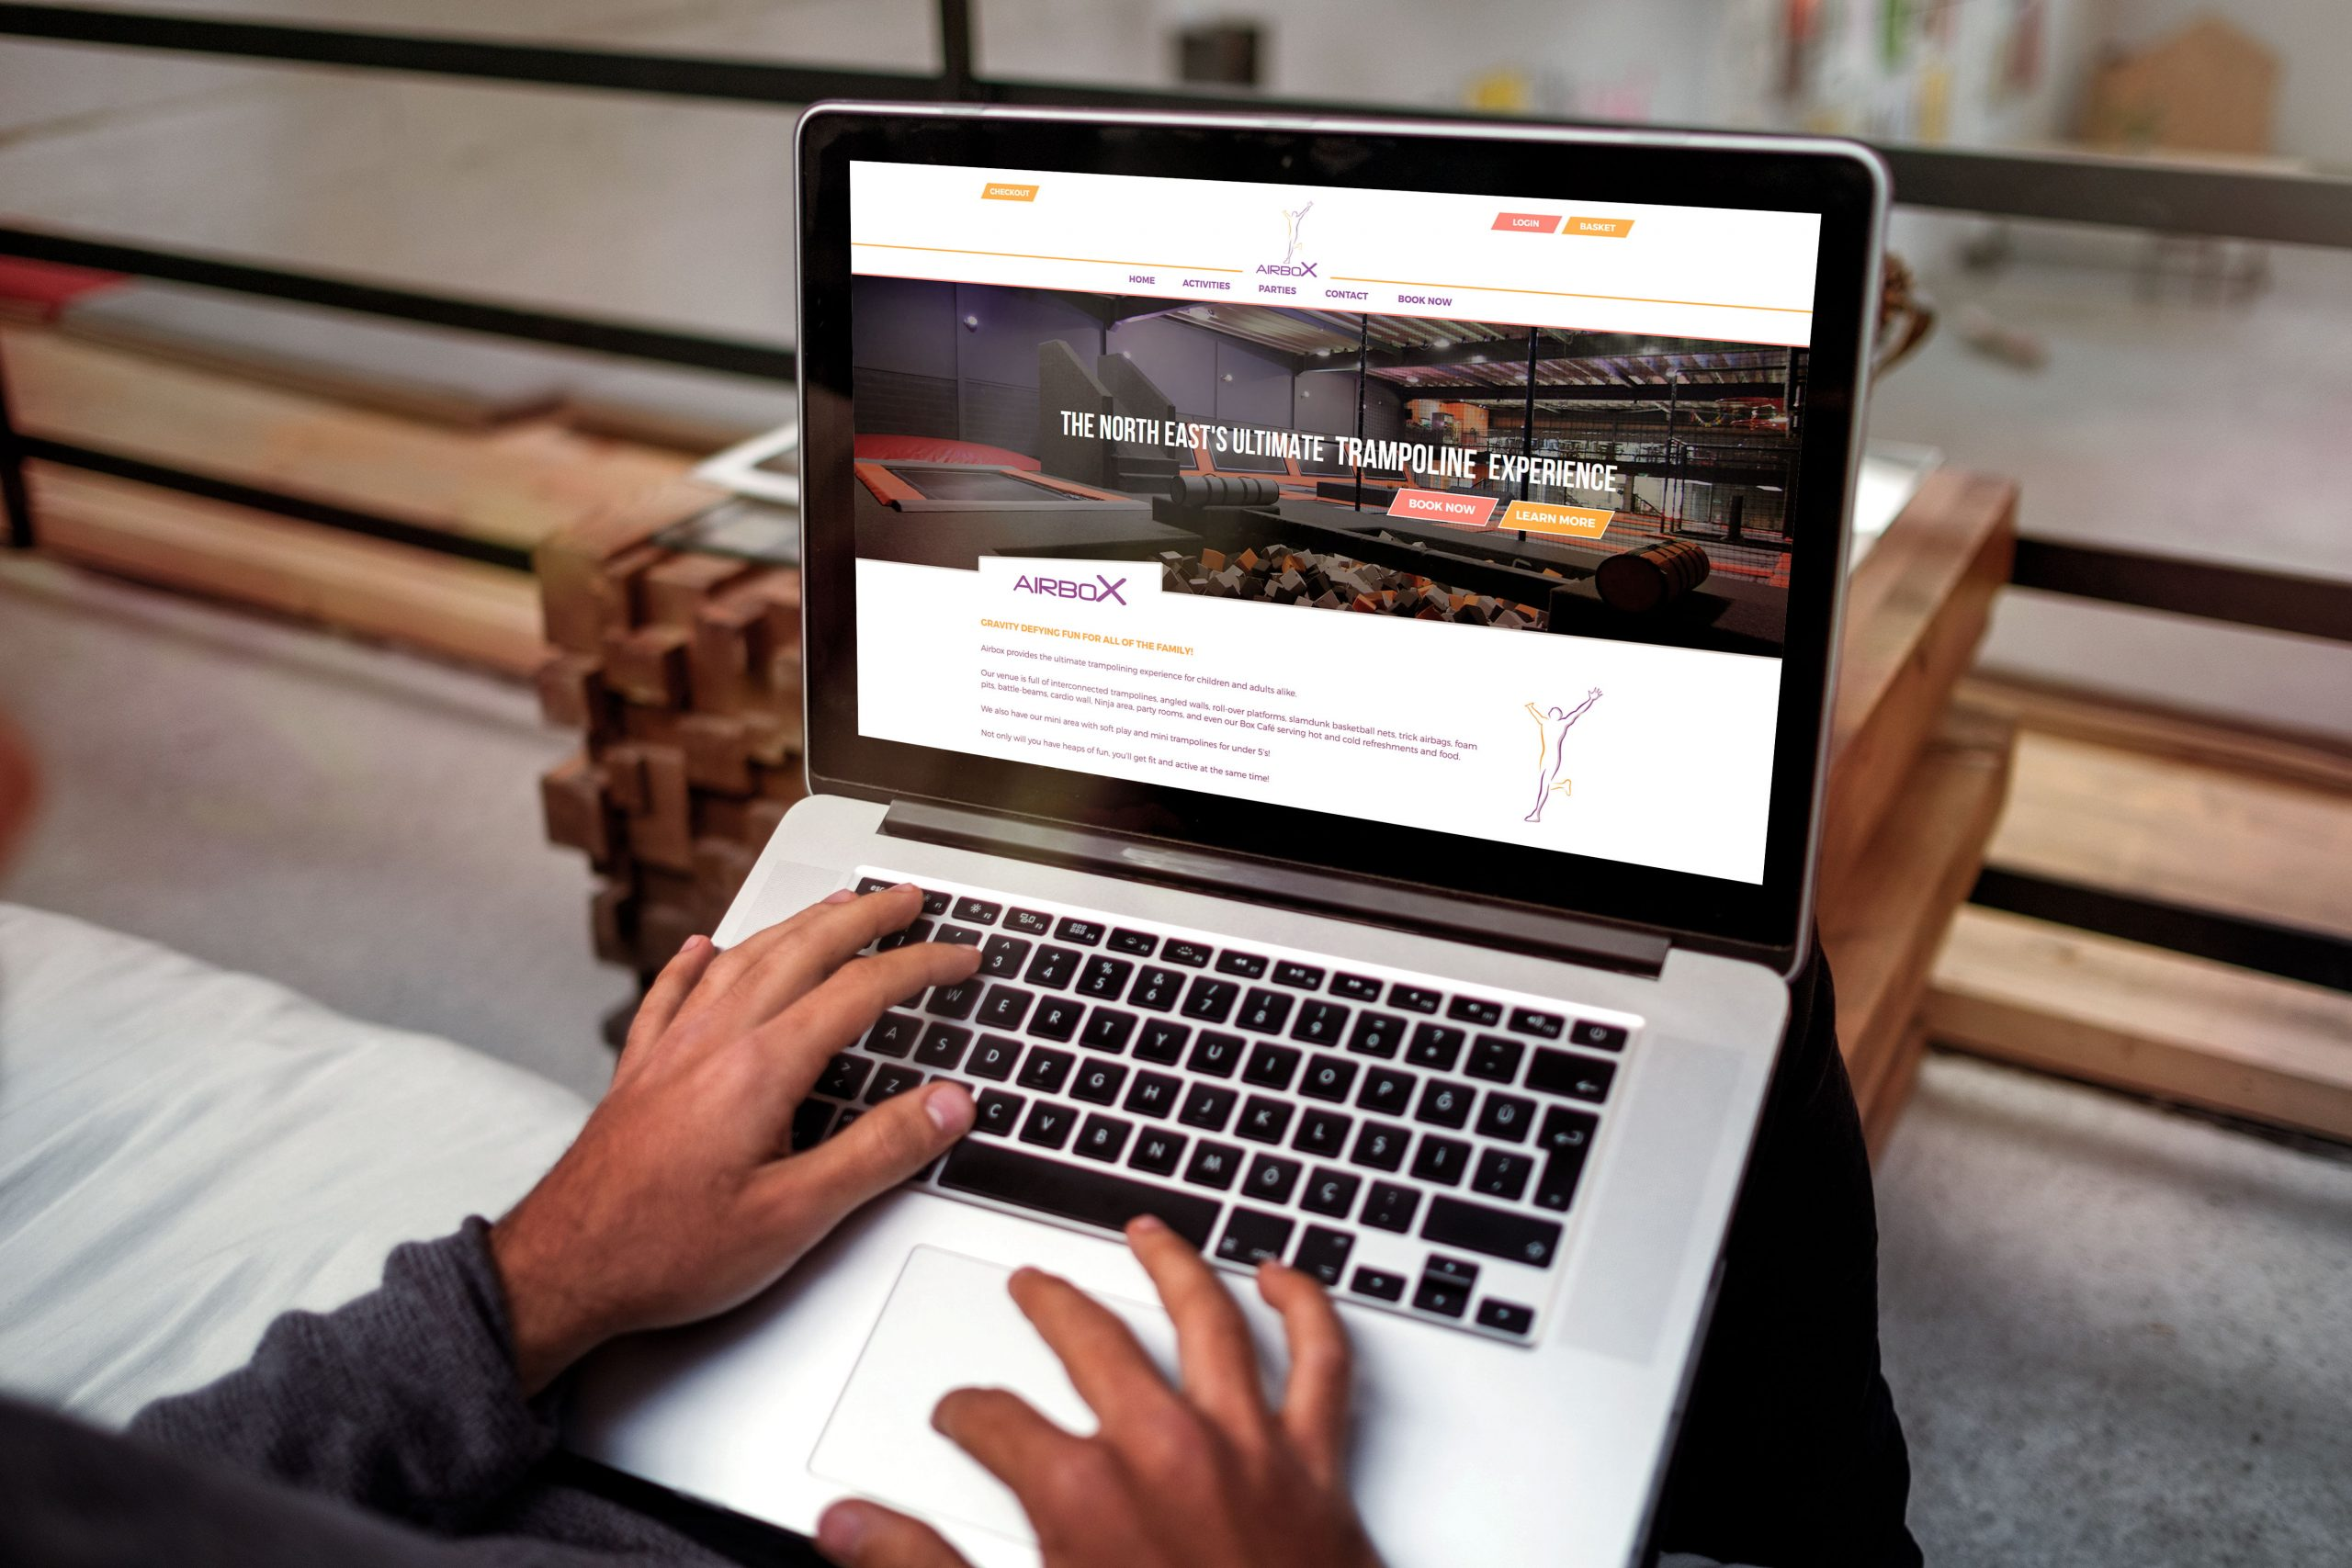 Airbox website being viewed by person on laptop